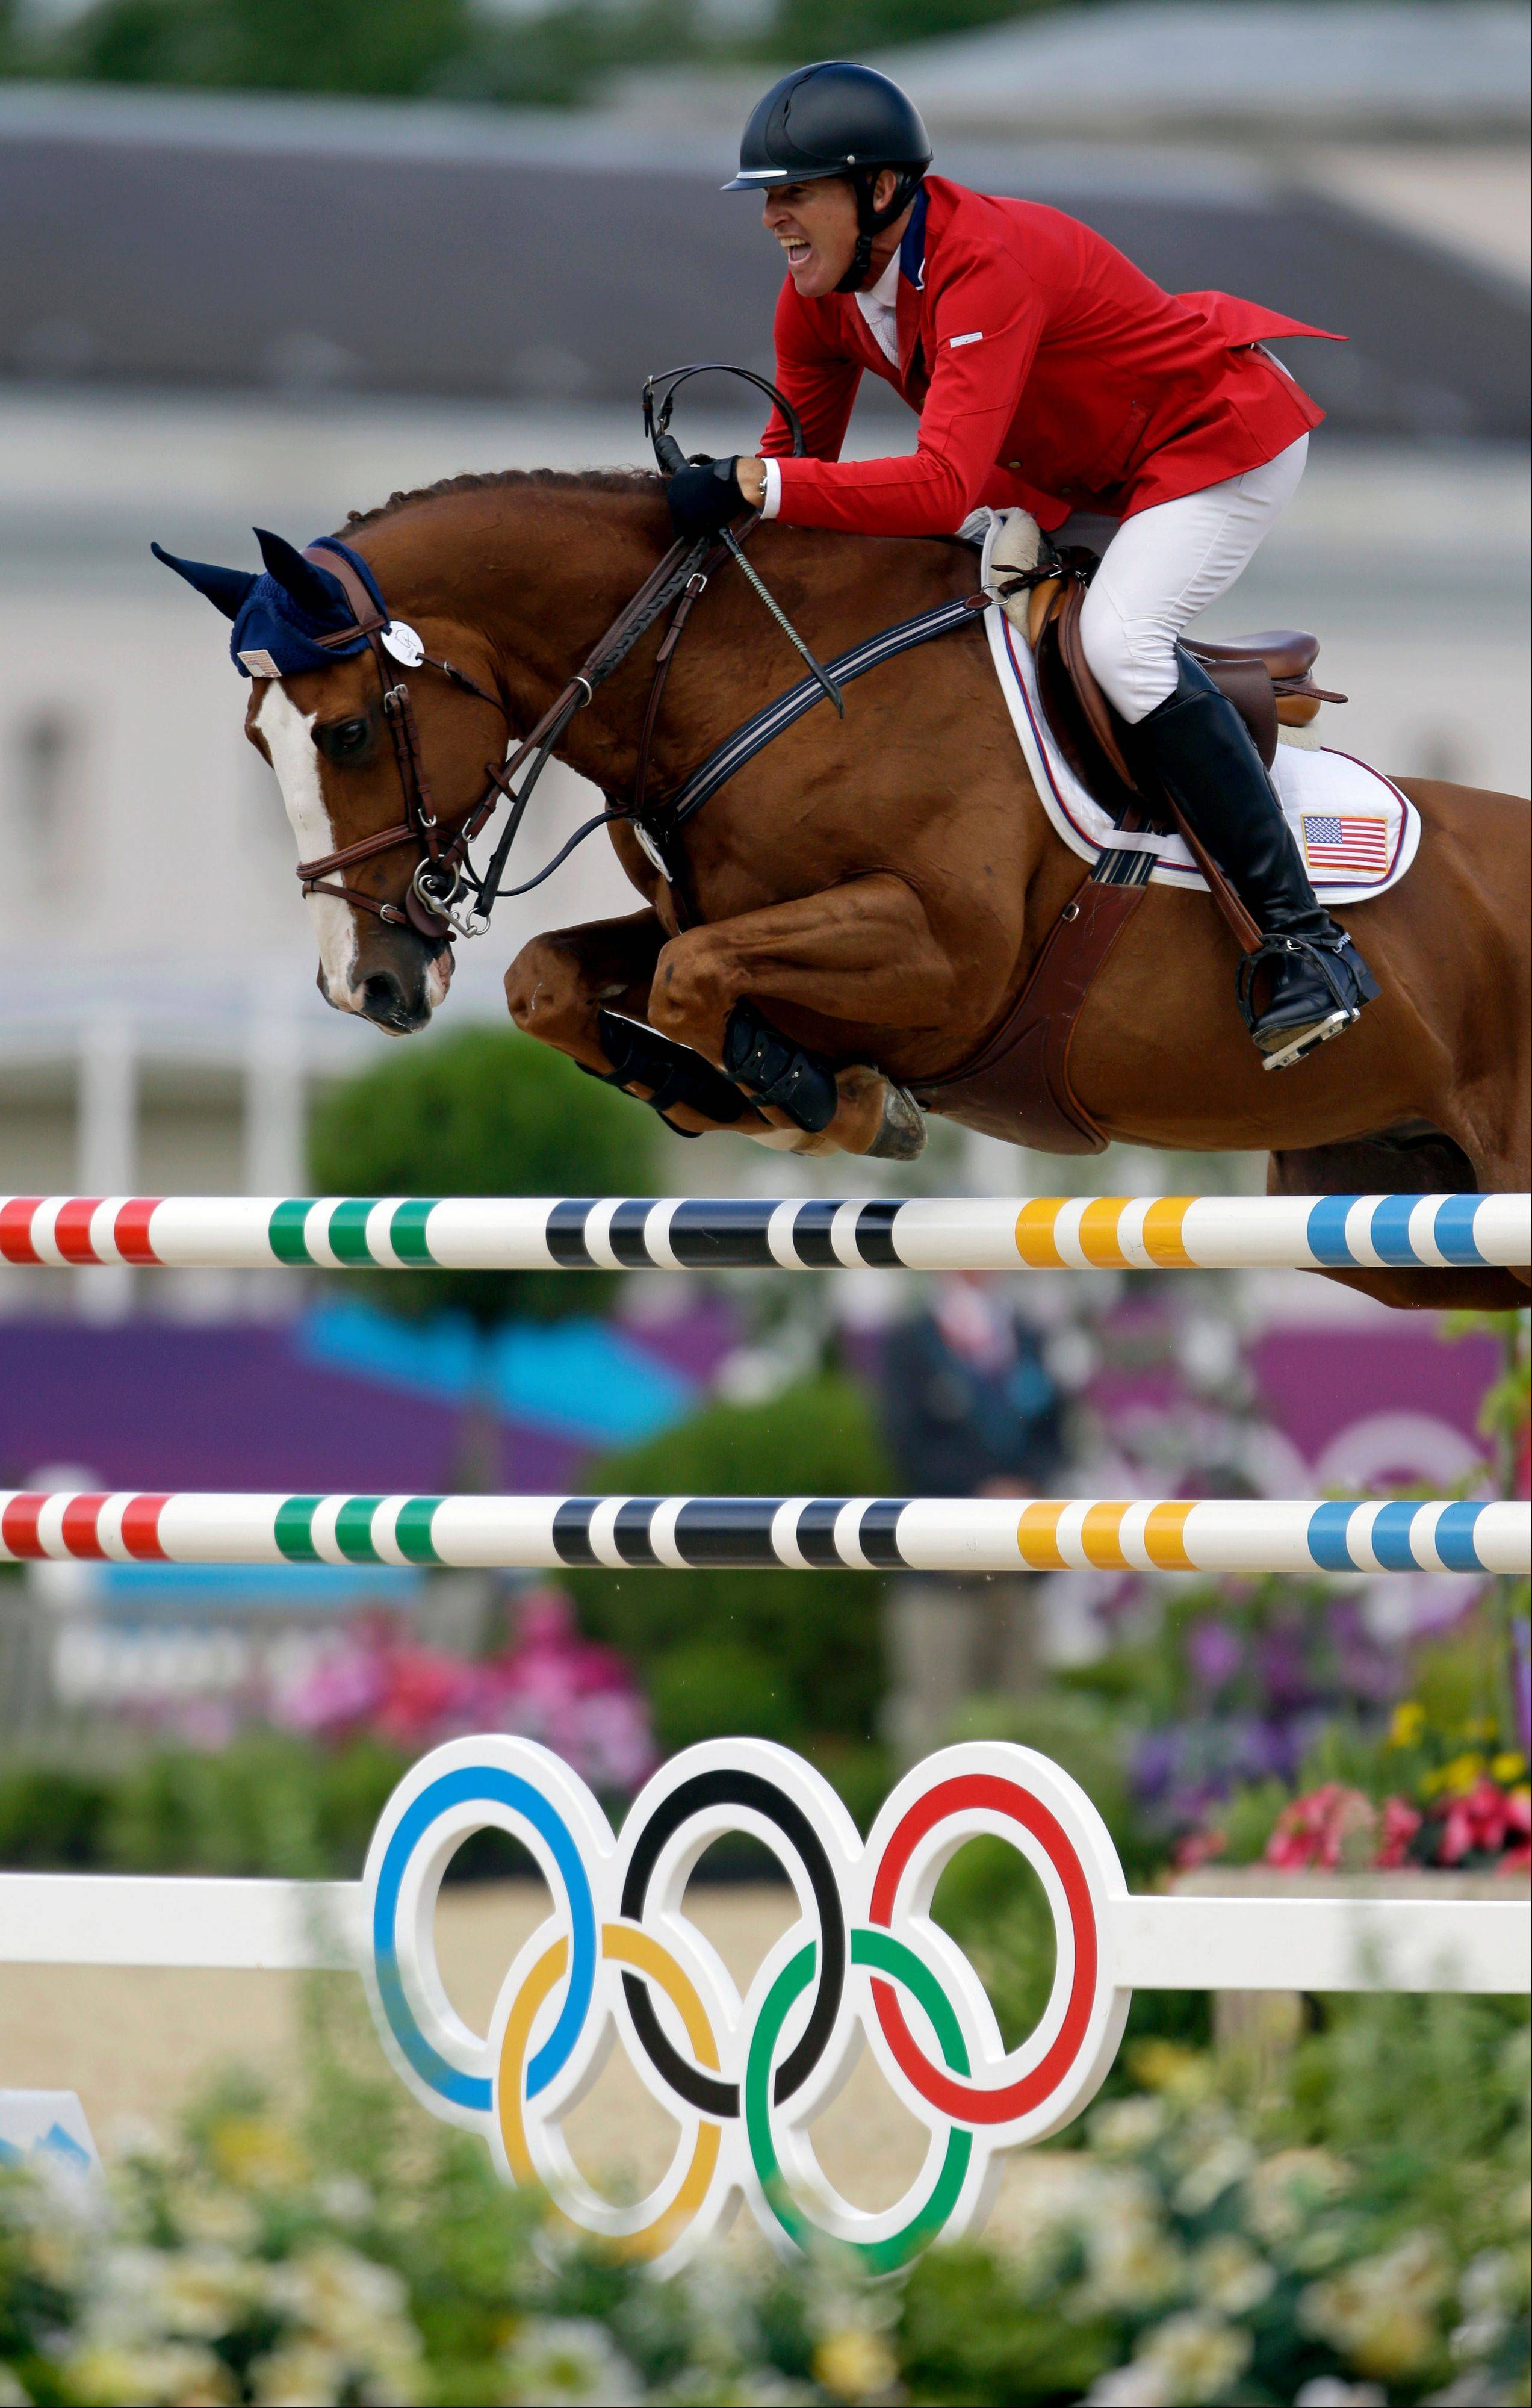 Richard Fellers, of the United States, rides Flexible during the equestrian individual show jumping competition at the 2012 Summer Olympics, Saturday, Aug. 4, 2012, in London.